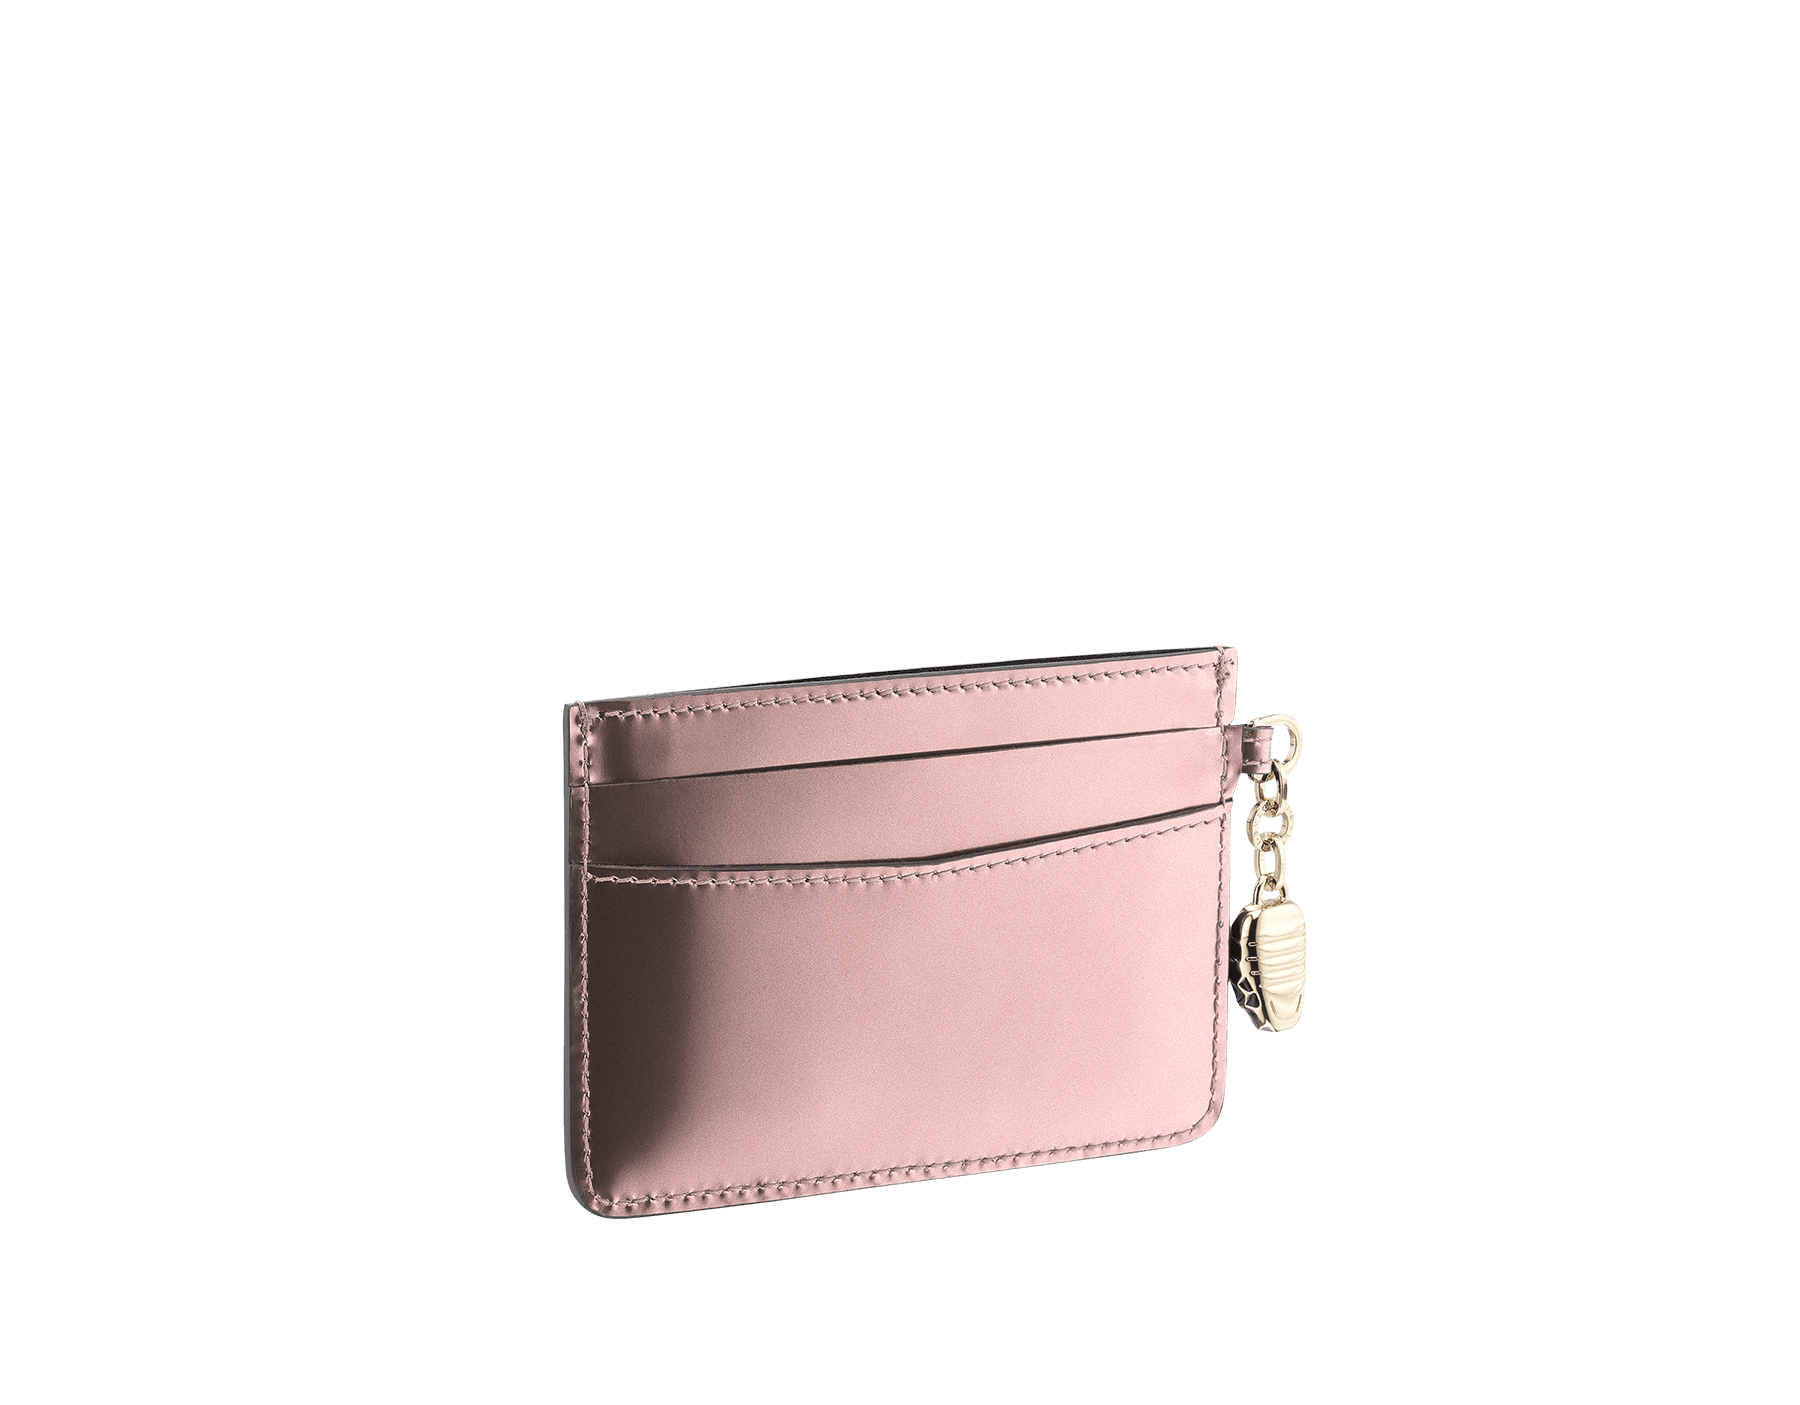 Credit card holder in rose quartz brushed metallic calf leather and black calf leather lining. Serpenti charm in black and white enamel, with green enamel eyes and Bulgari logo. 285416 image 2